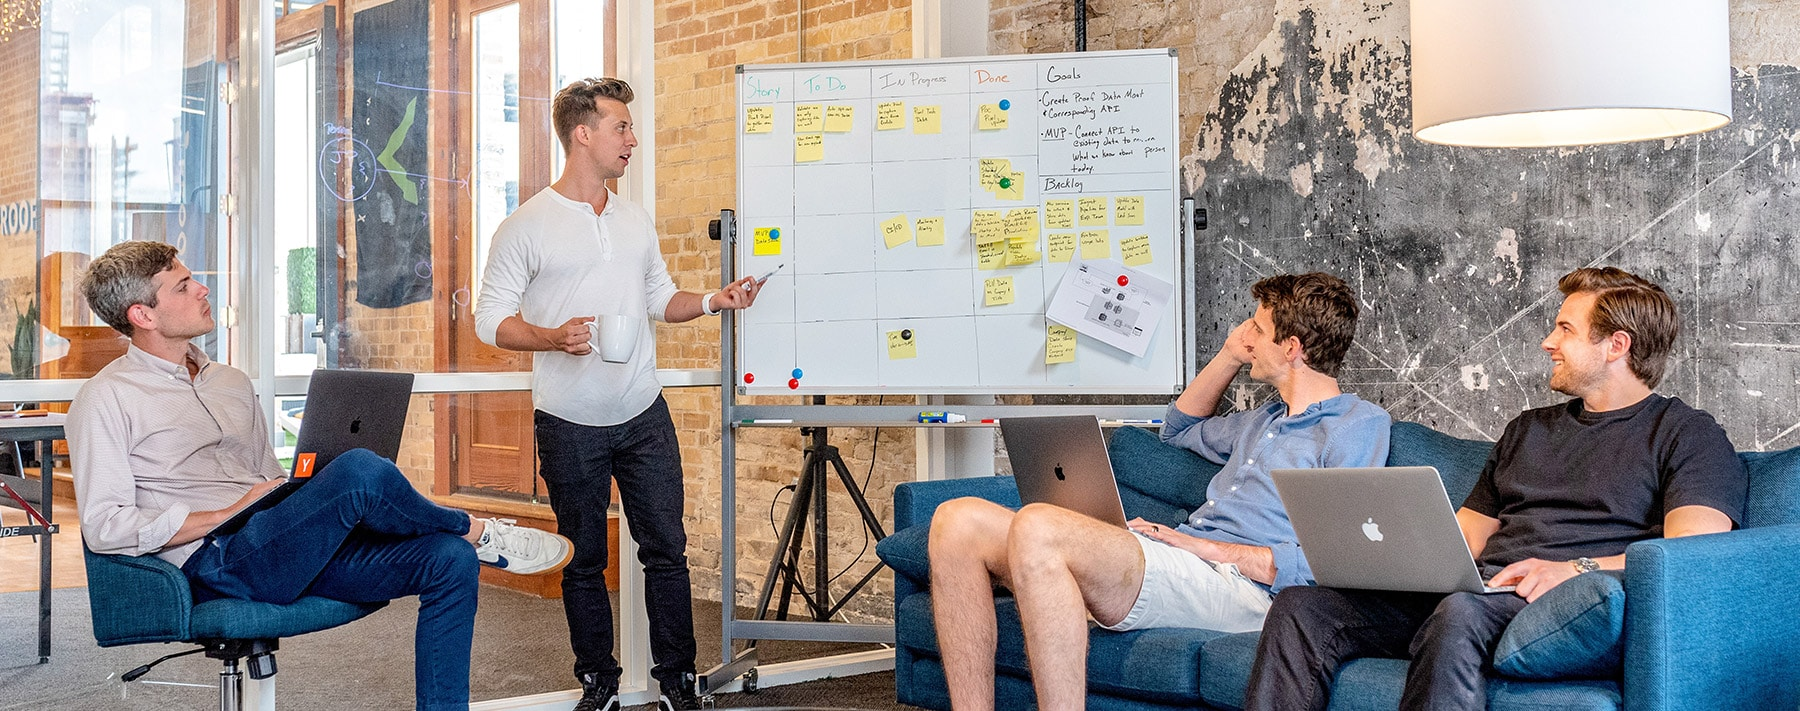 Sales Goals Examples to Take Your Team to the Next Level